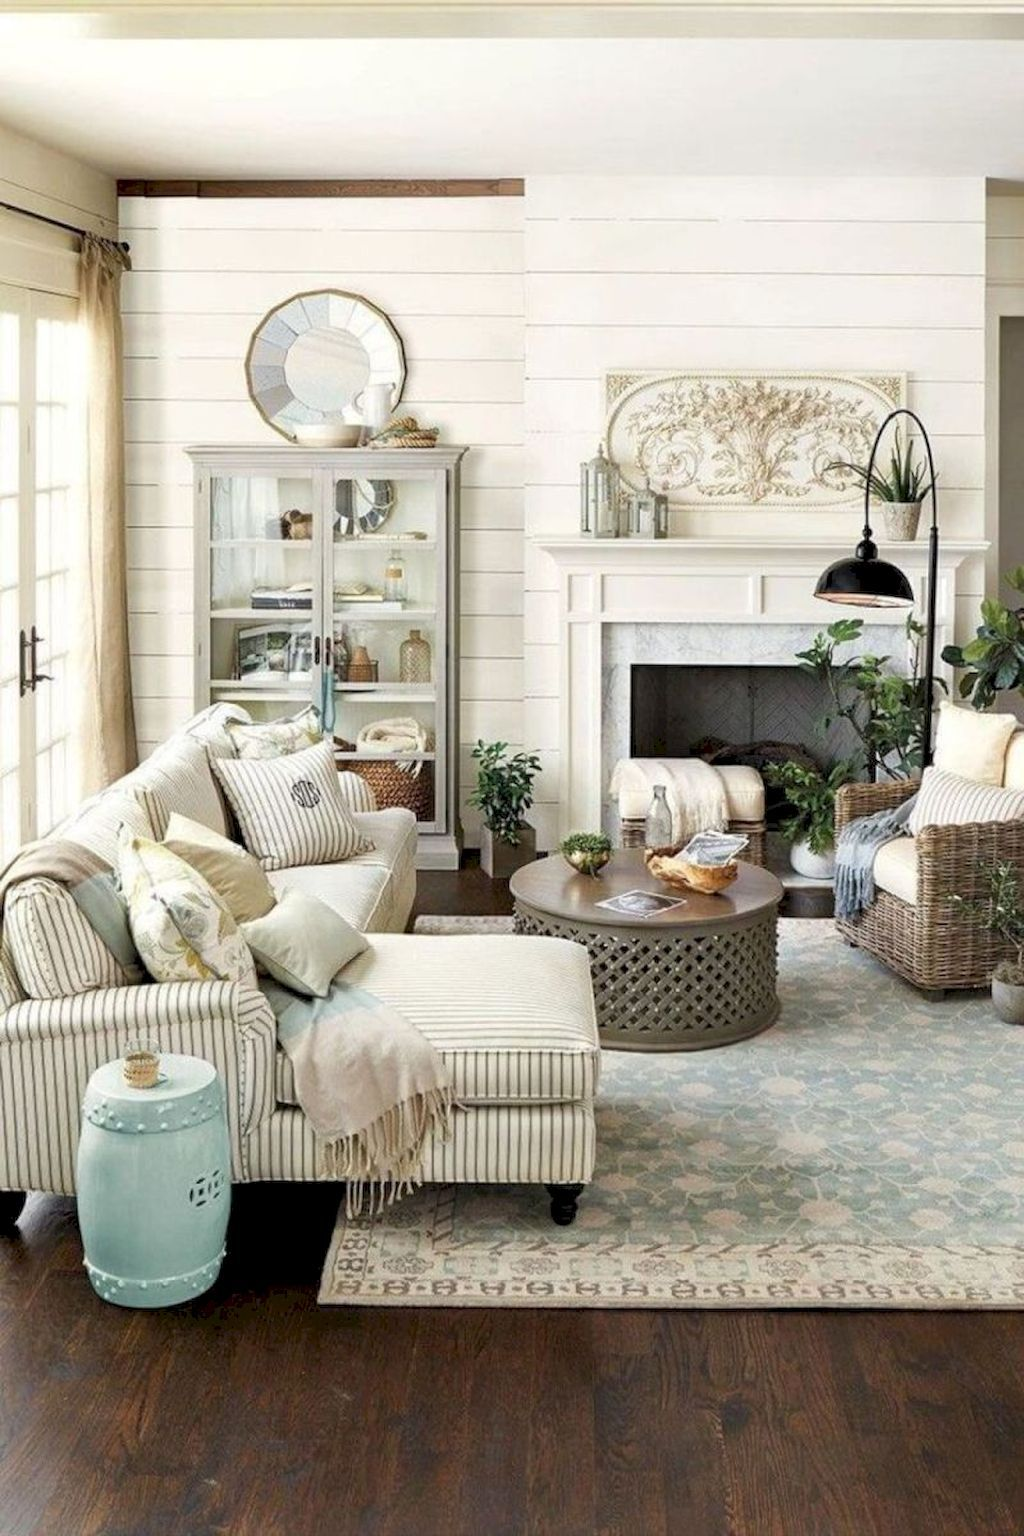 Living Room Ideas 2018 Grey To Decor Small Pin By C A On Livingrooms And Family Rooms In Pinterest